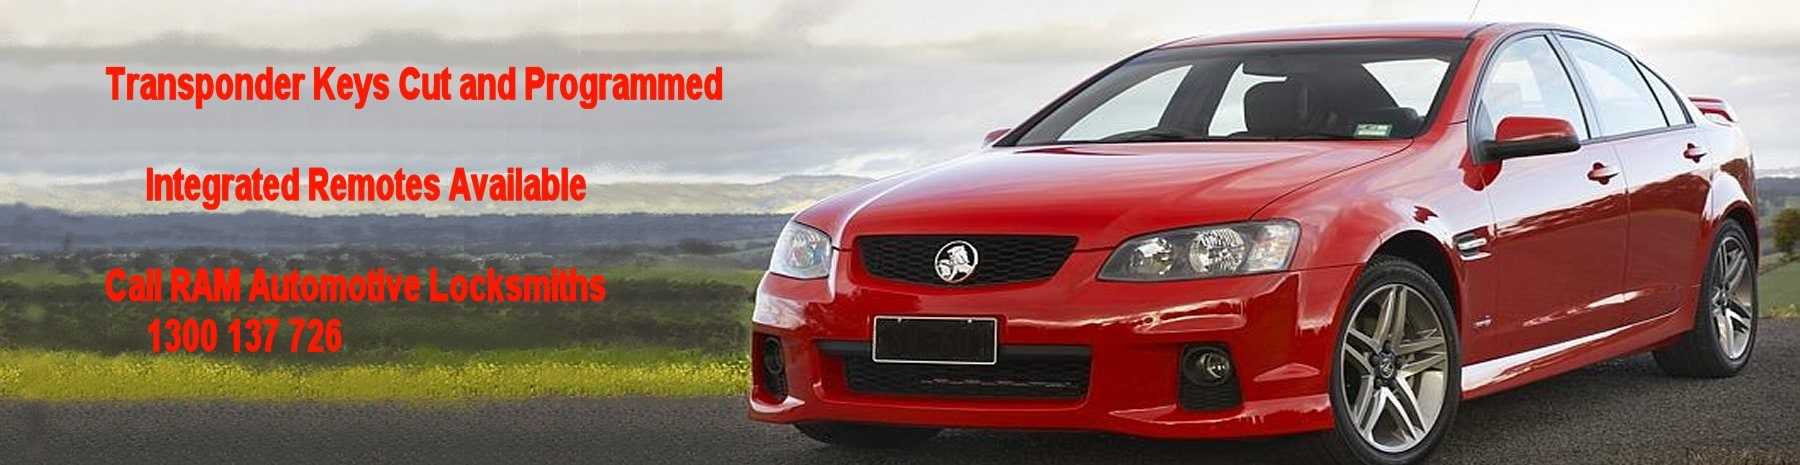 Holden-1800x465-plus-text